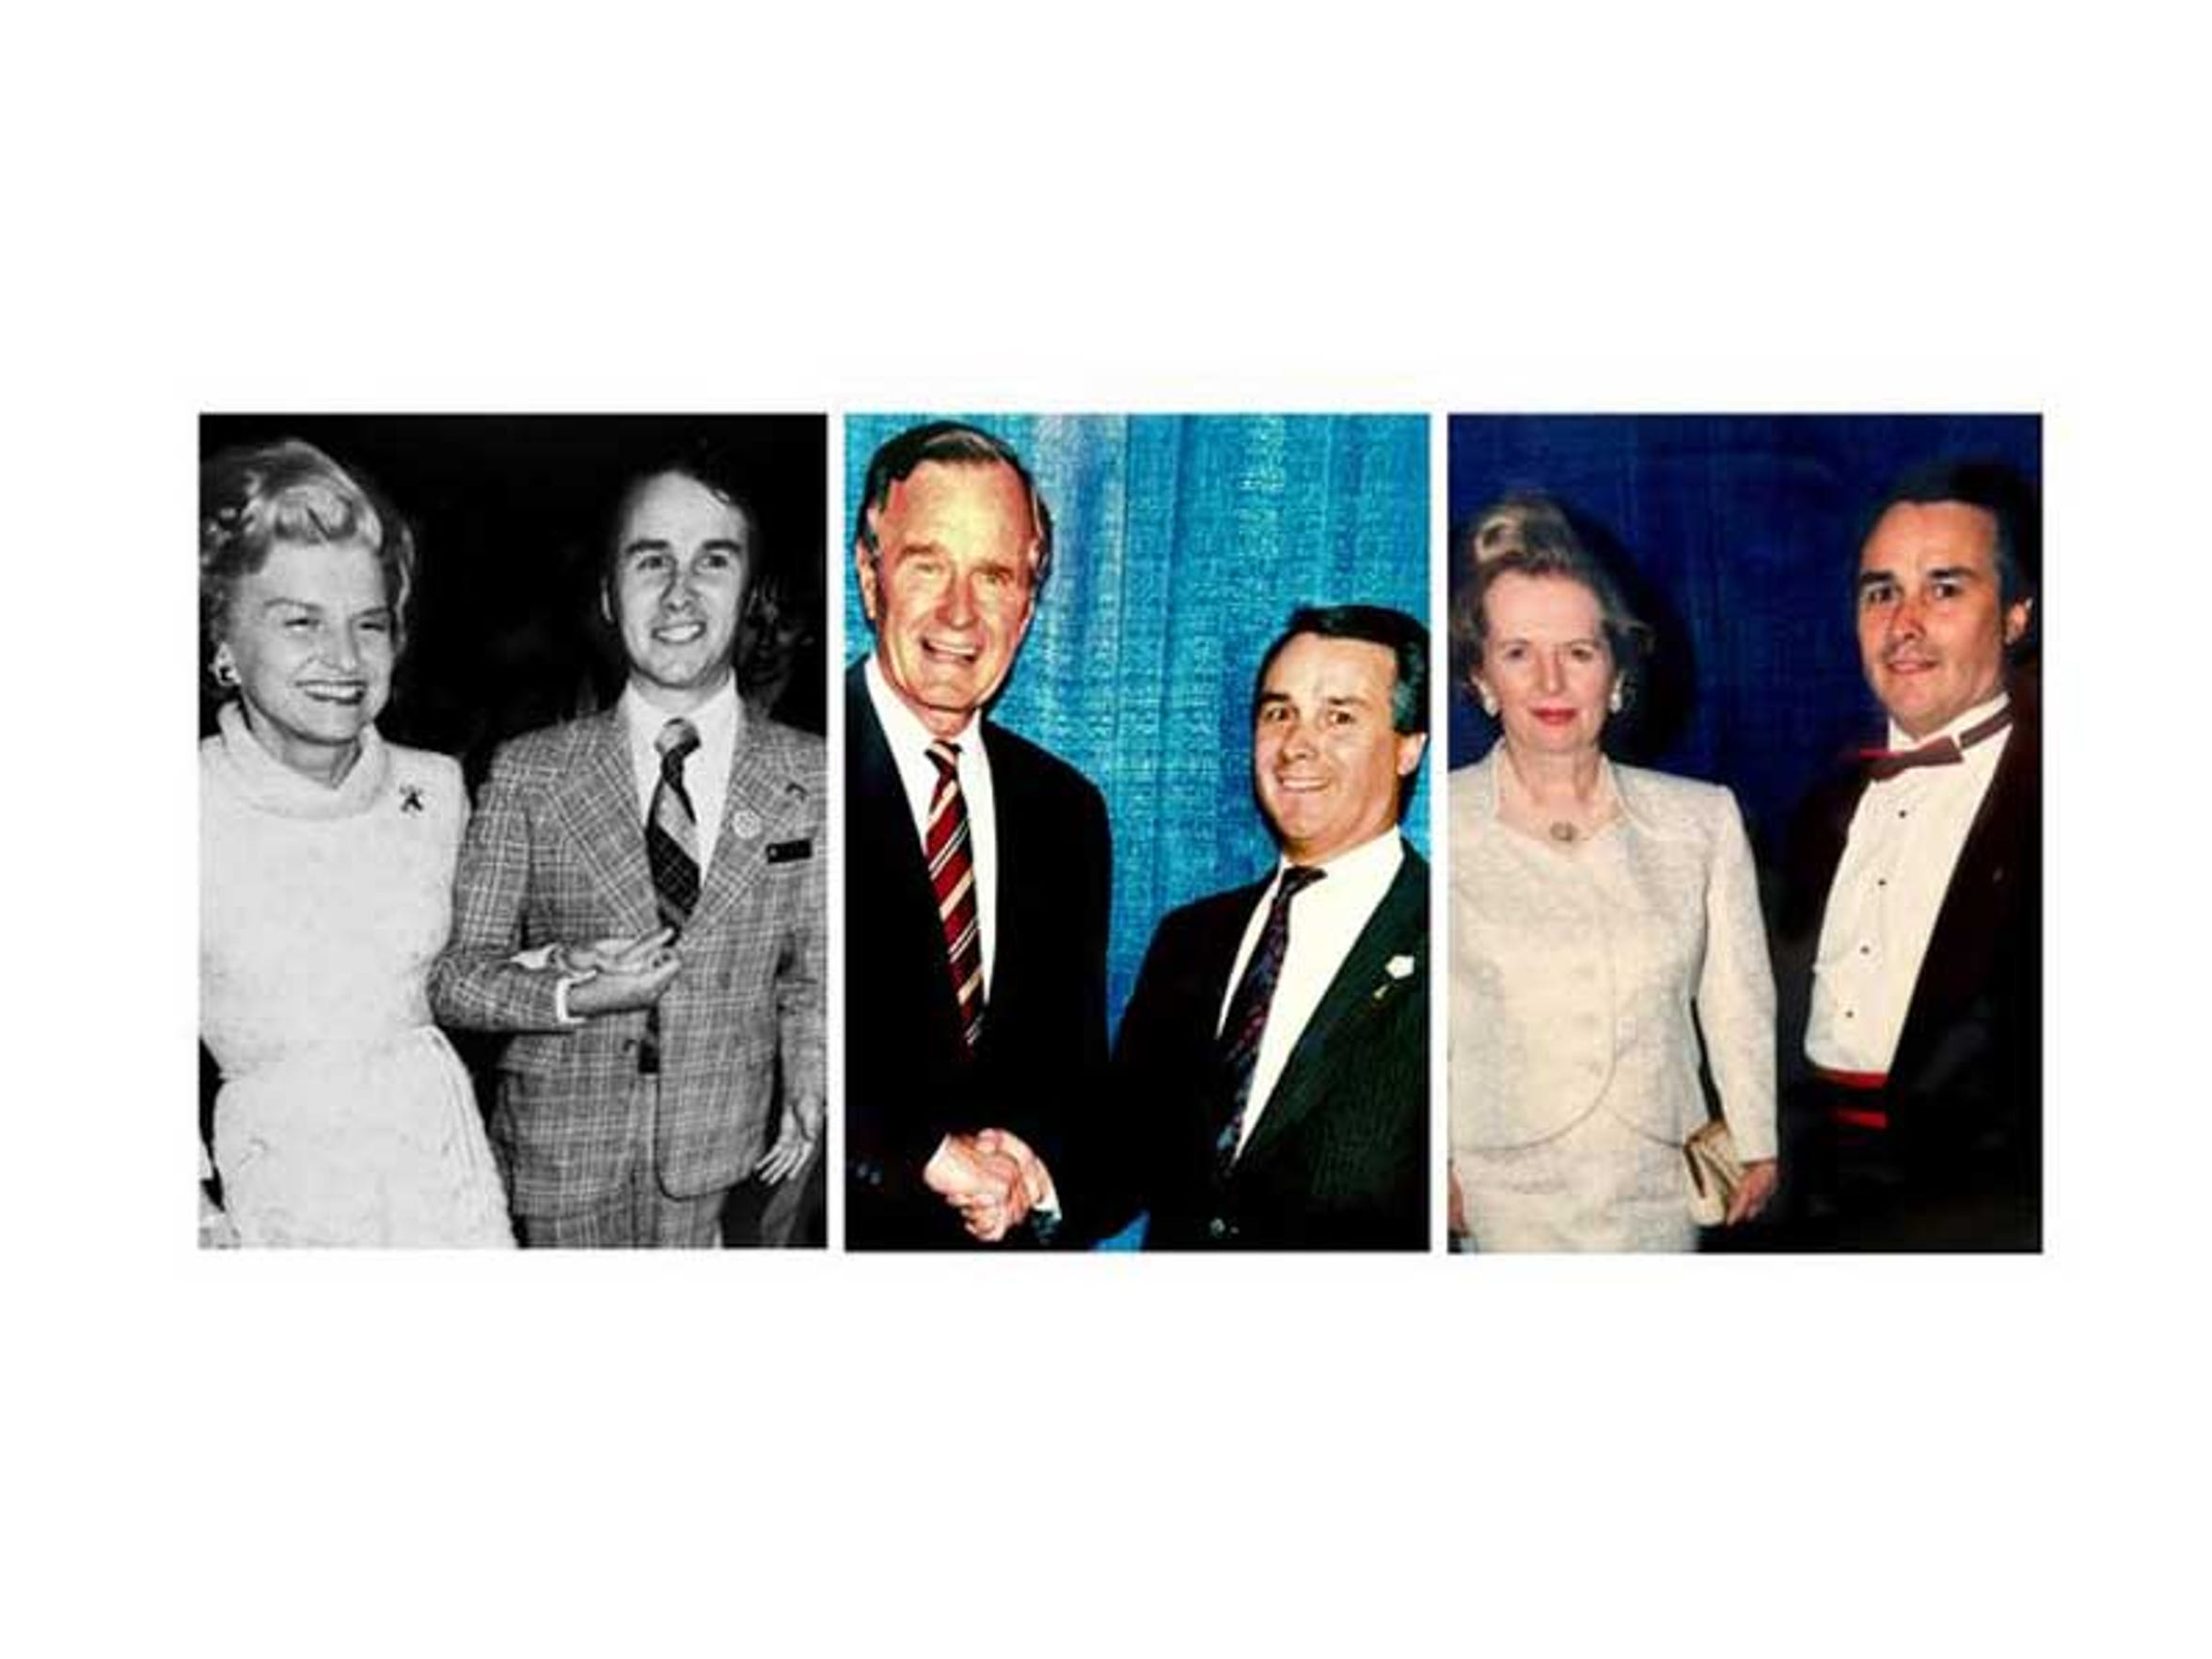 As the director for catering at the Opryland Hotel, Rudy Caduff, right in all photos, got to meet world leaders and celebrities, including former first lady Betty Ford, President George H. W. Bush and former British Prime Minister Margaret Thatcher.